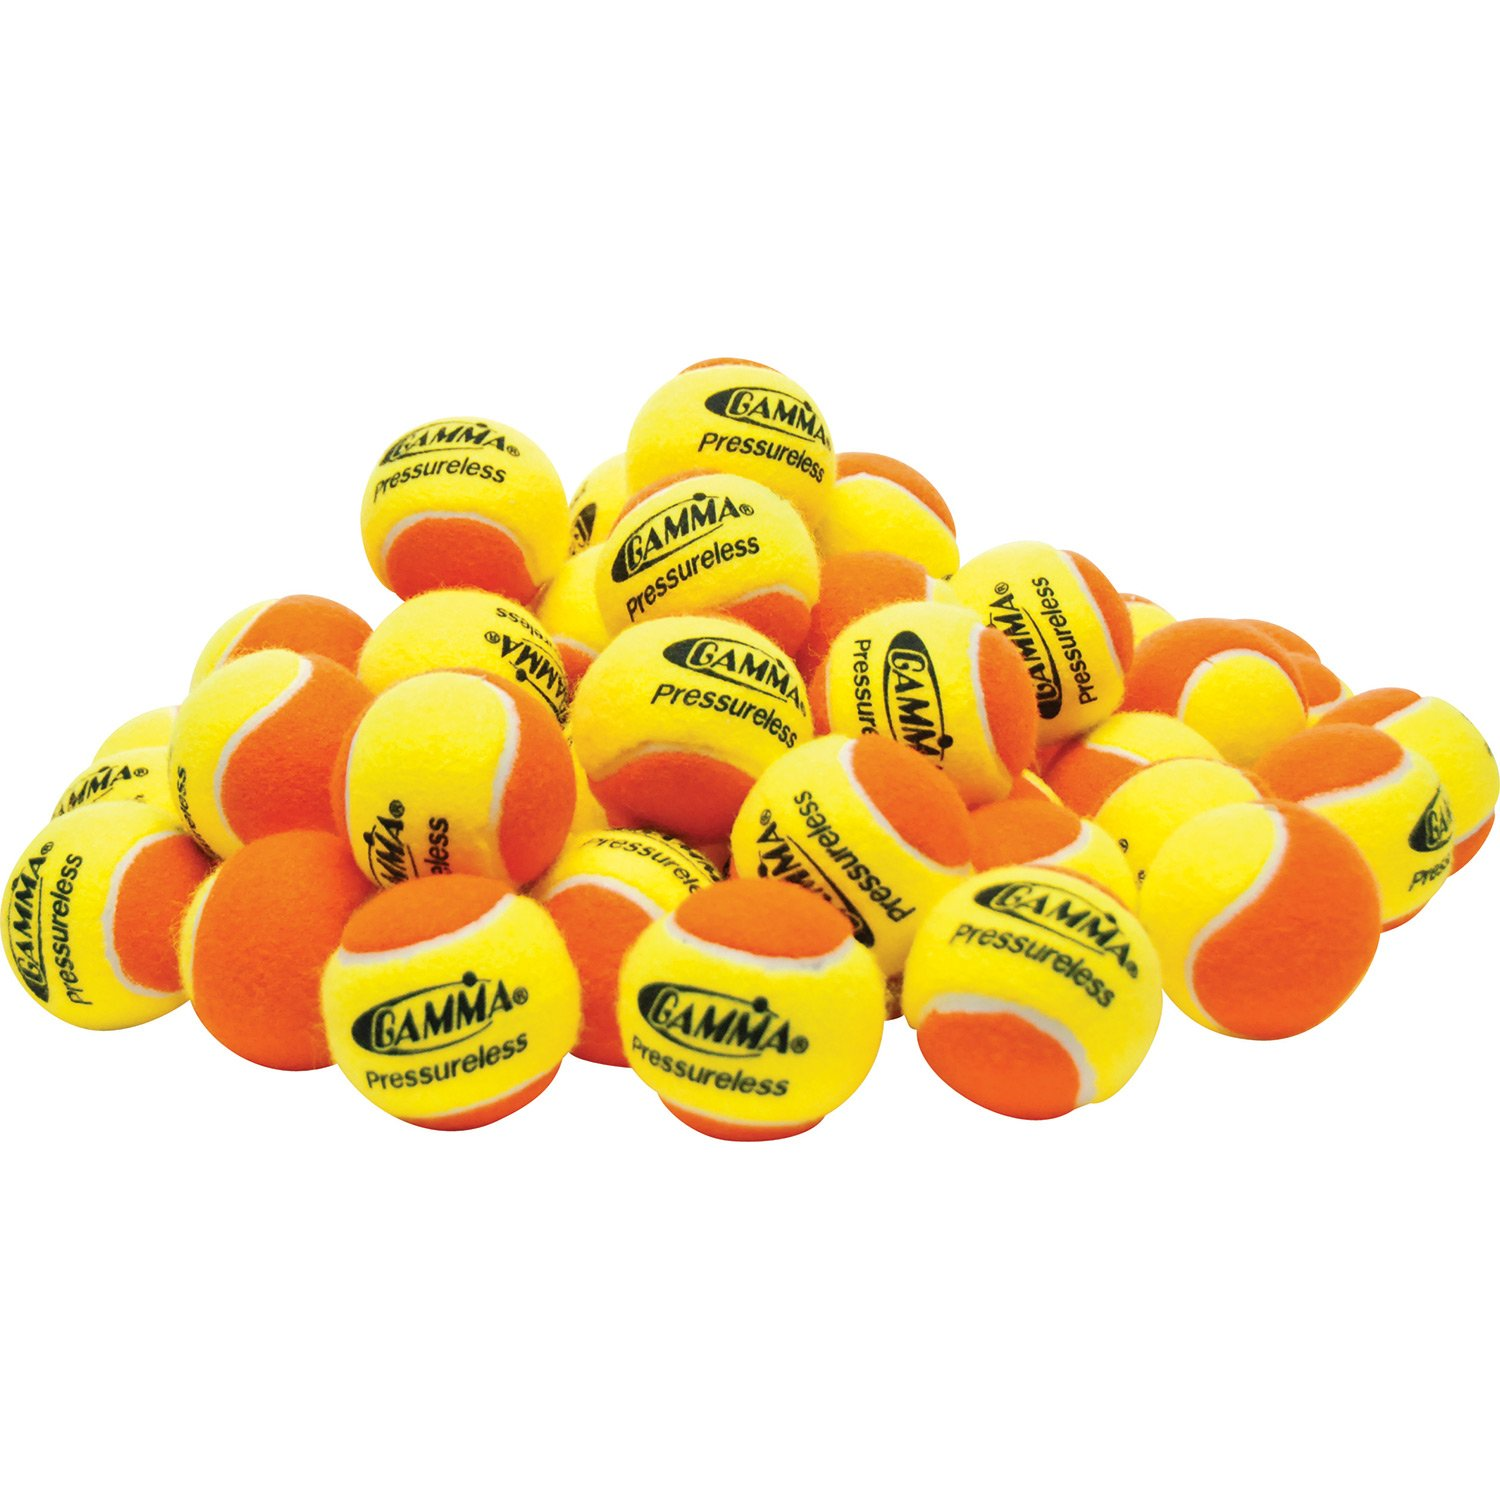 Gamma Sports Pressureless Practice Tennis Balls, Yellow/Orange - Pack of 60